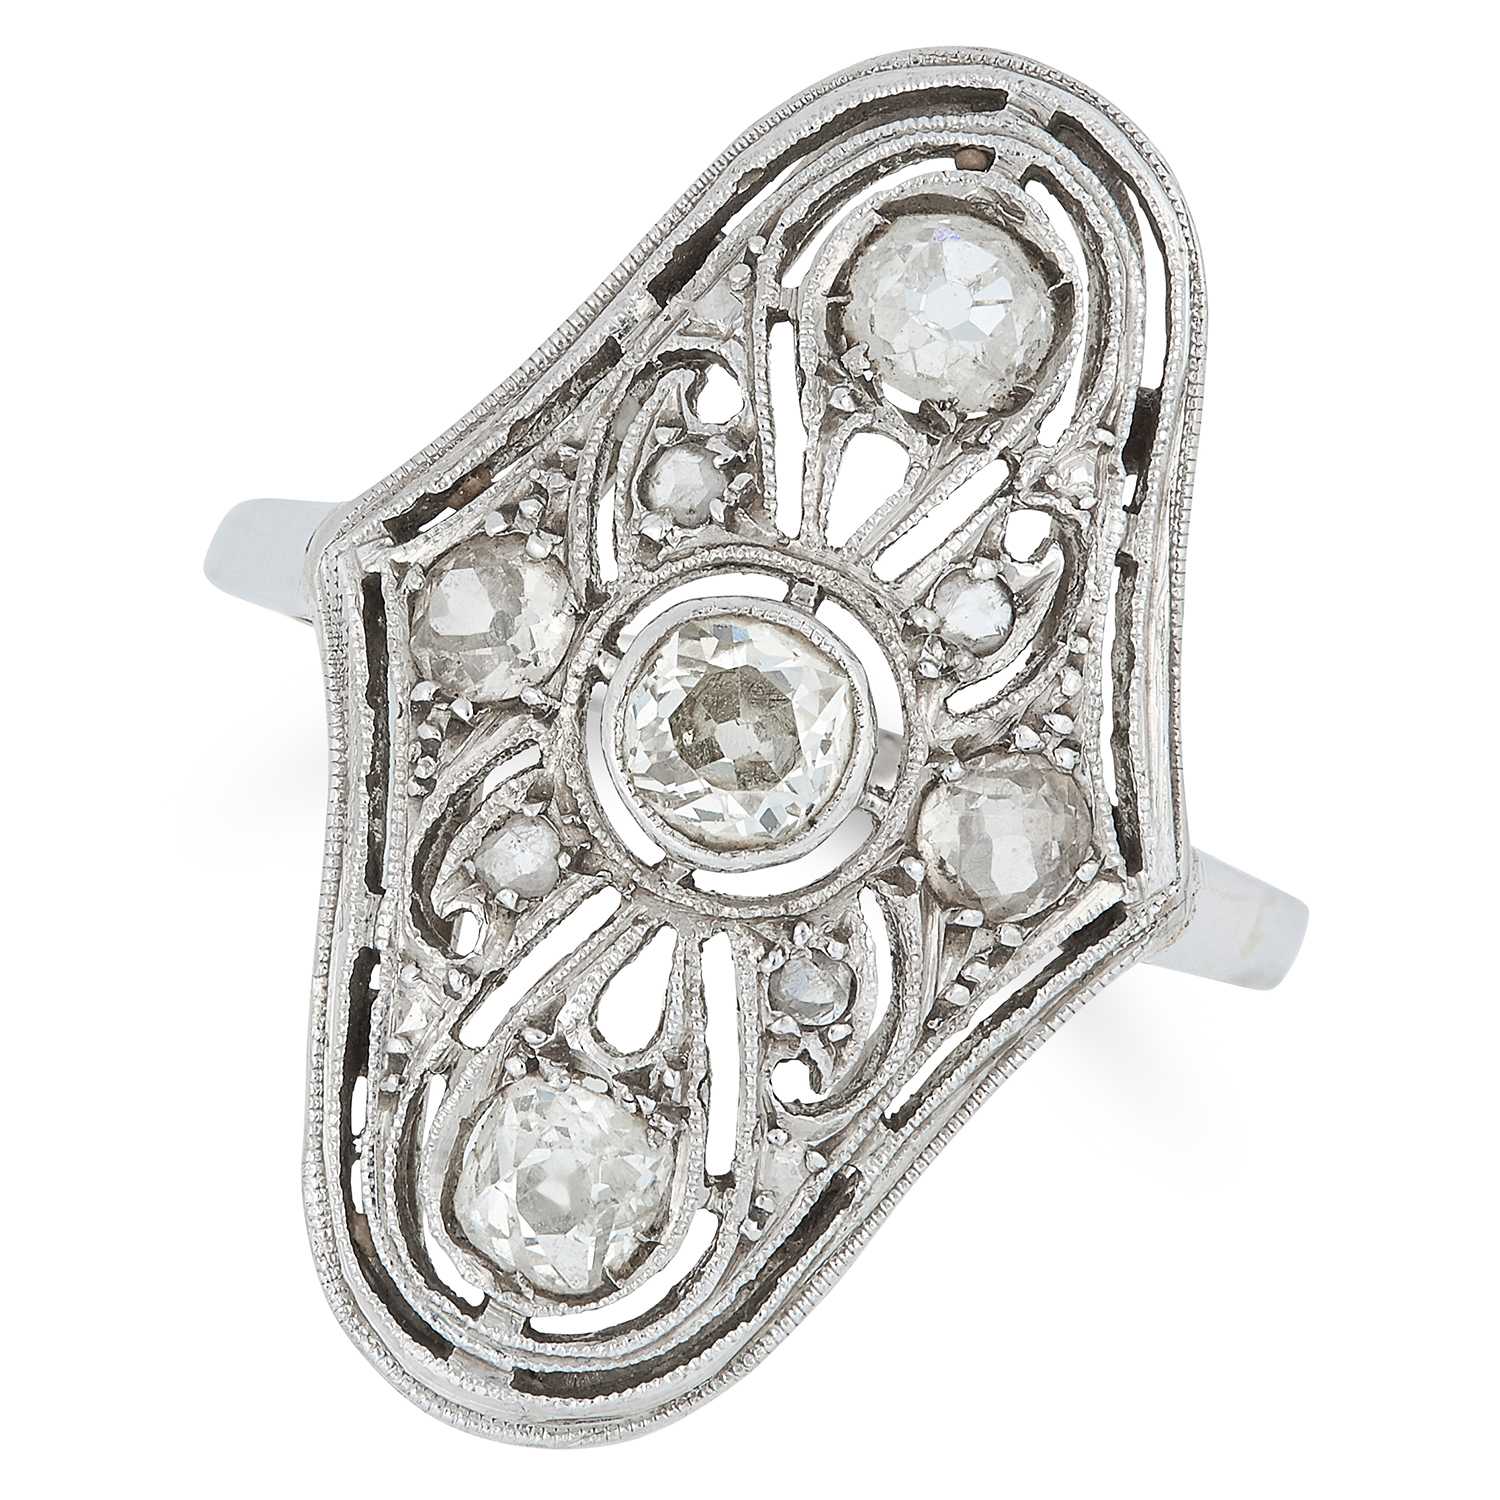 ART DECO DIAMOND DRESS RING the open framework is set with old and rose cut diamonds, size L / 5.